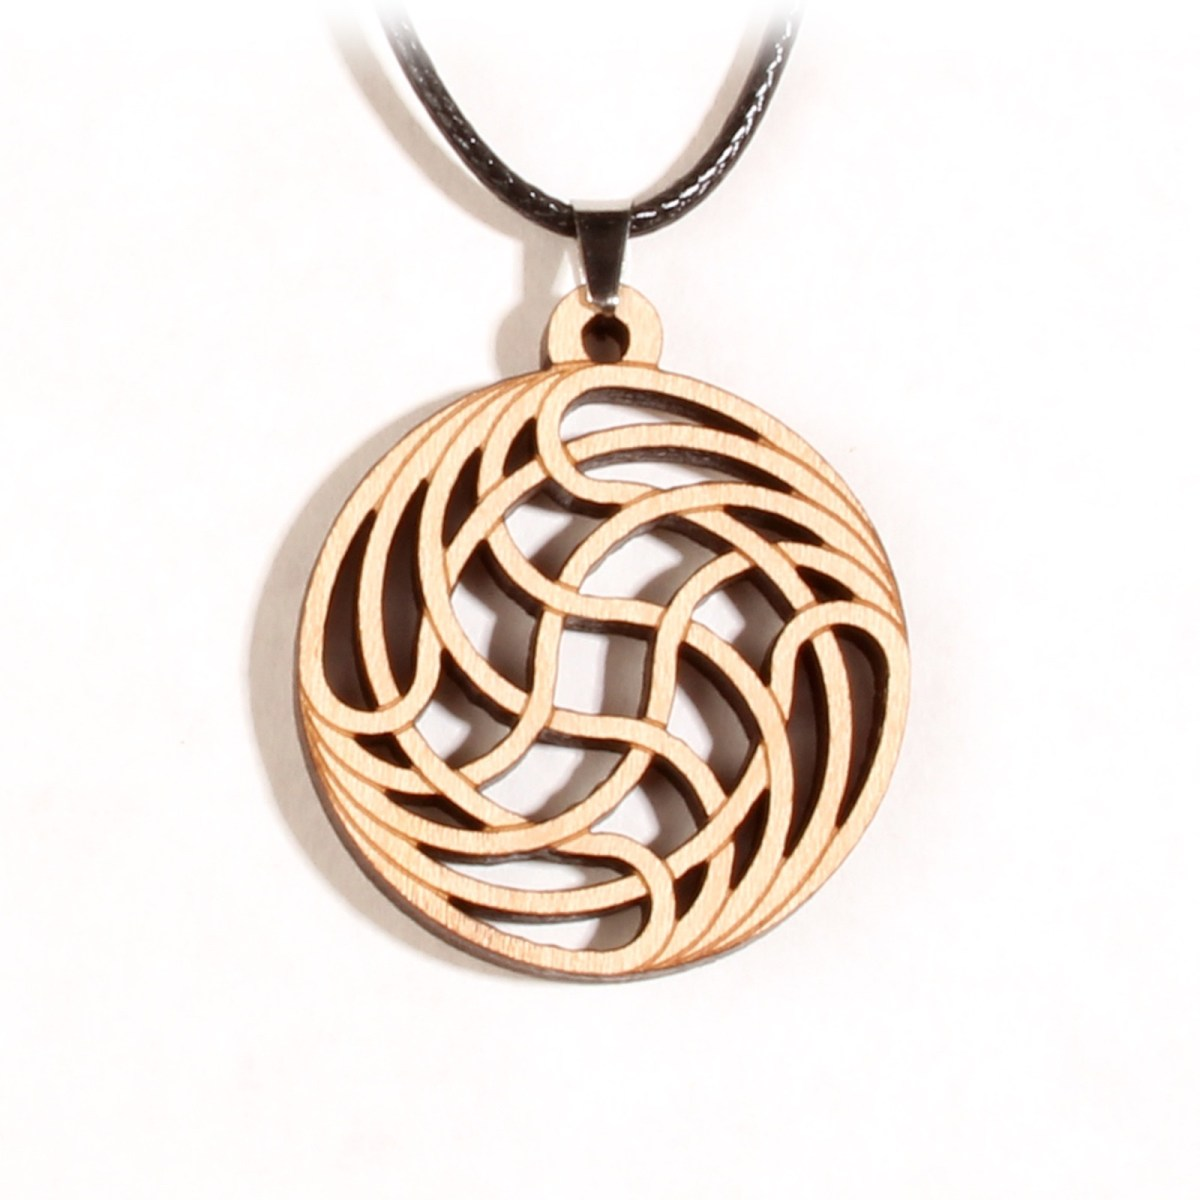 Fortuknot Pendant - Naked Geometry